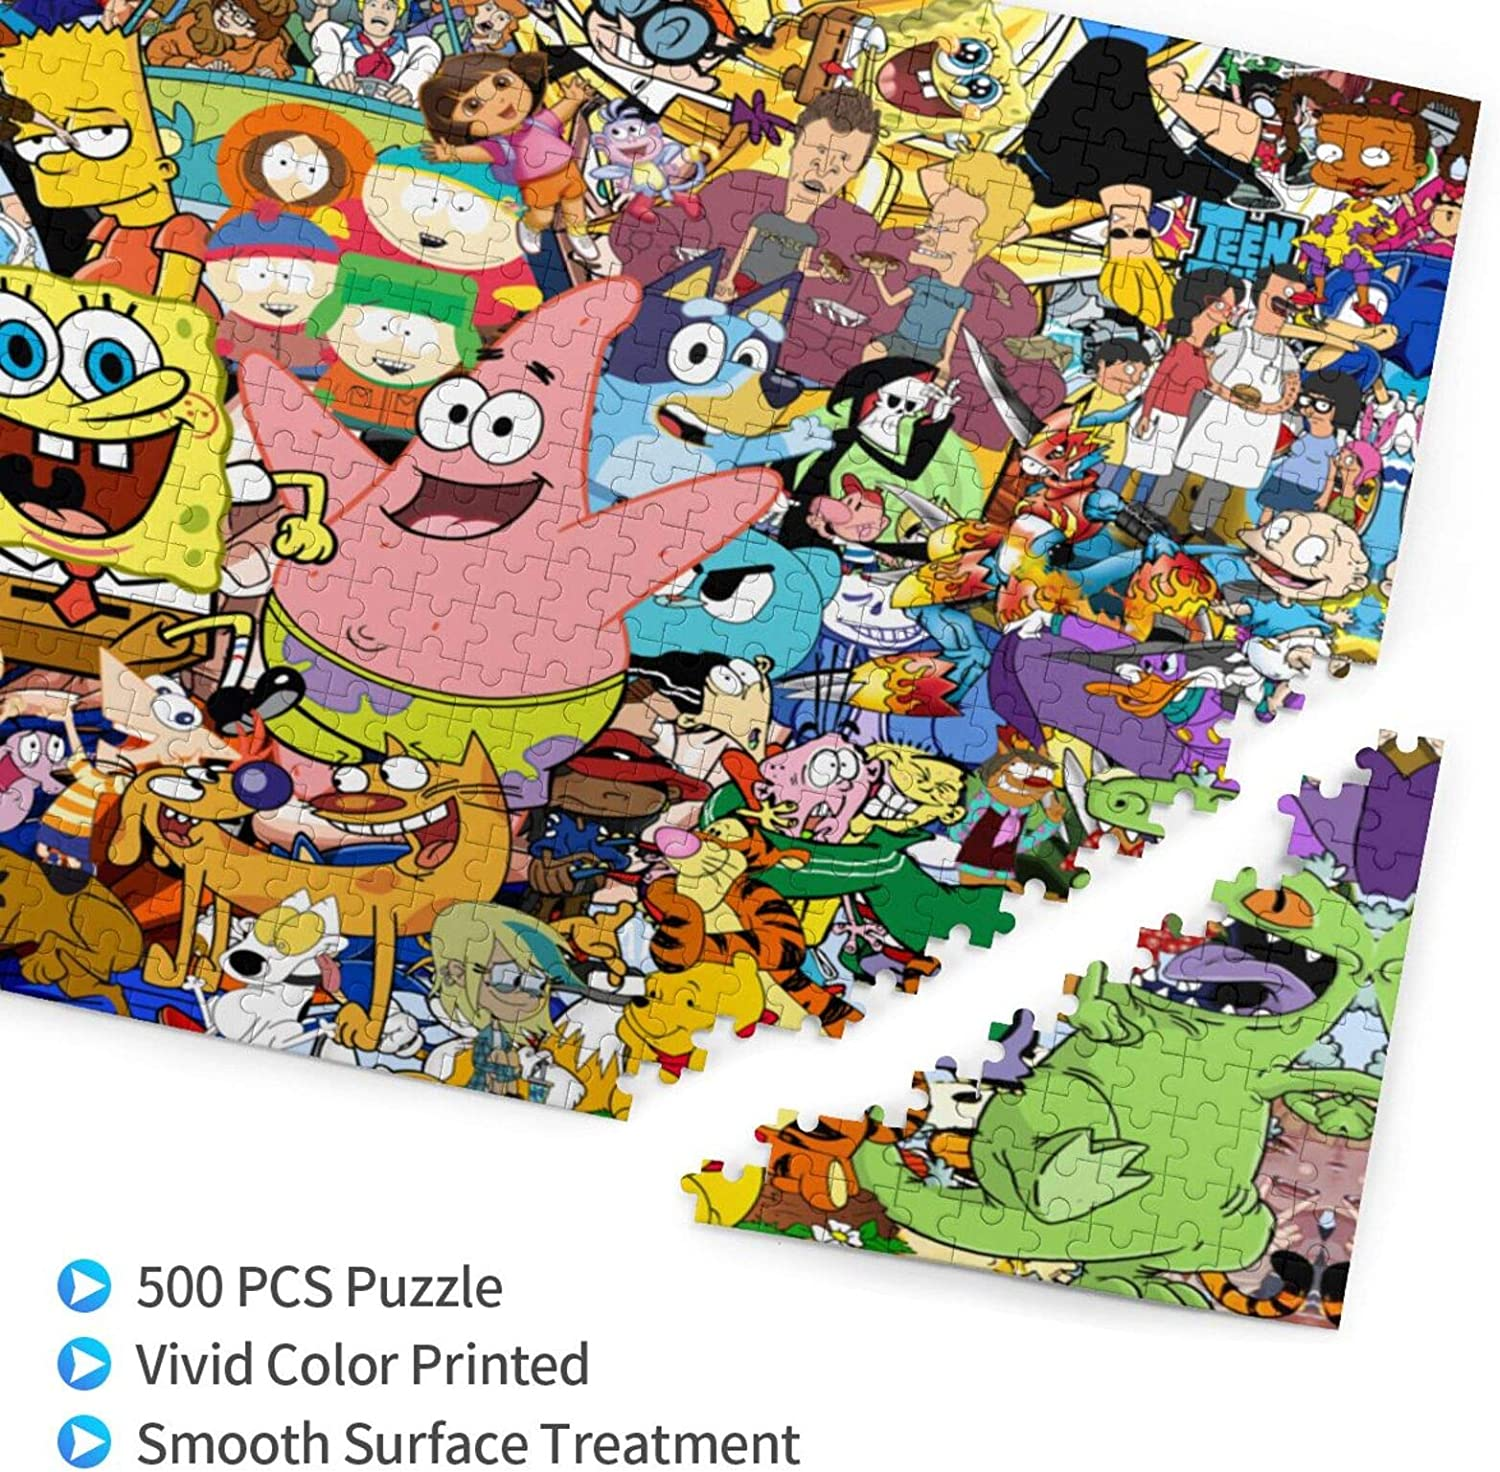 Robprint Plants Vs Zombies Puzzle 500 Pieces for Teenagers Wooden Jigsaw Puzzles Kids Game Toy Gift Decompression Toys